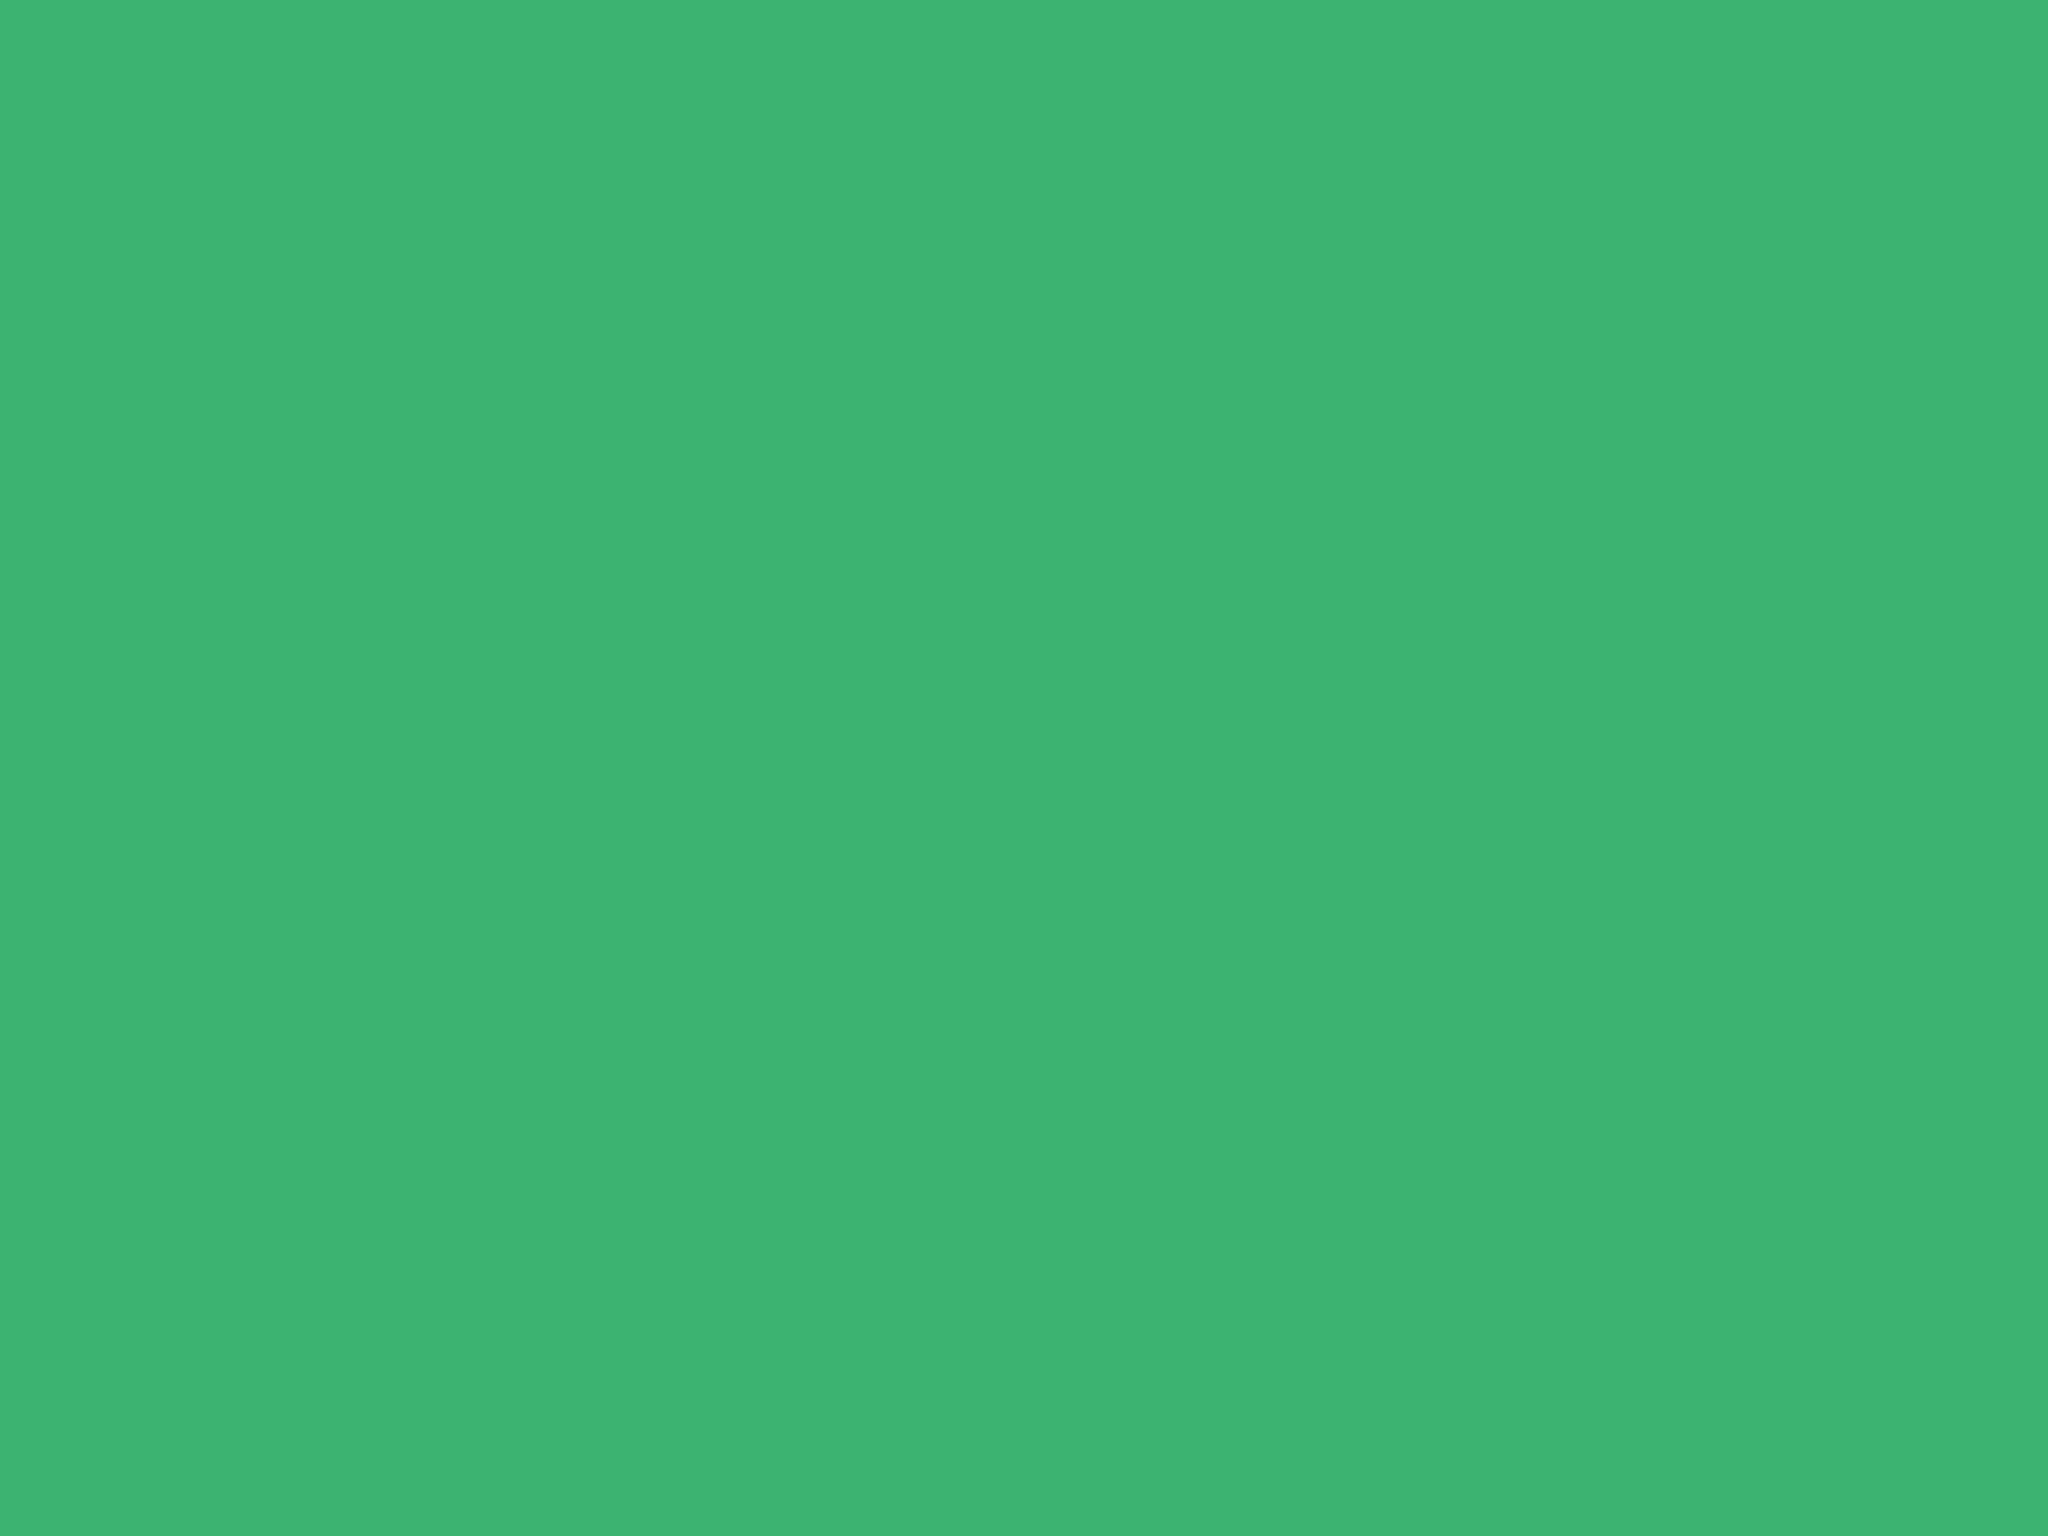 2048x1536 Medium Sea Green Solid Color Background